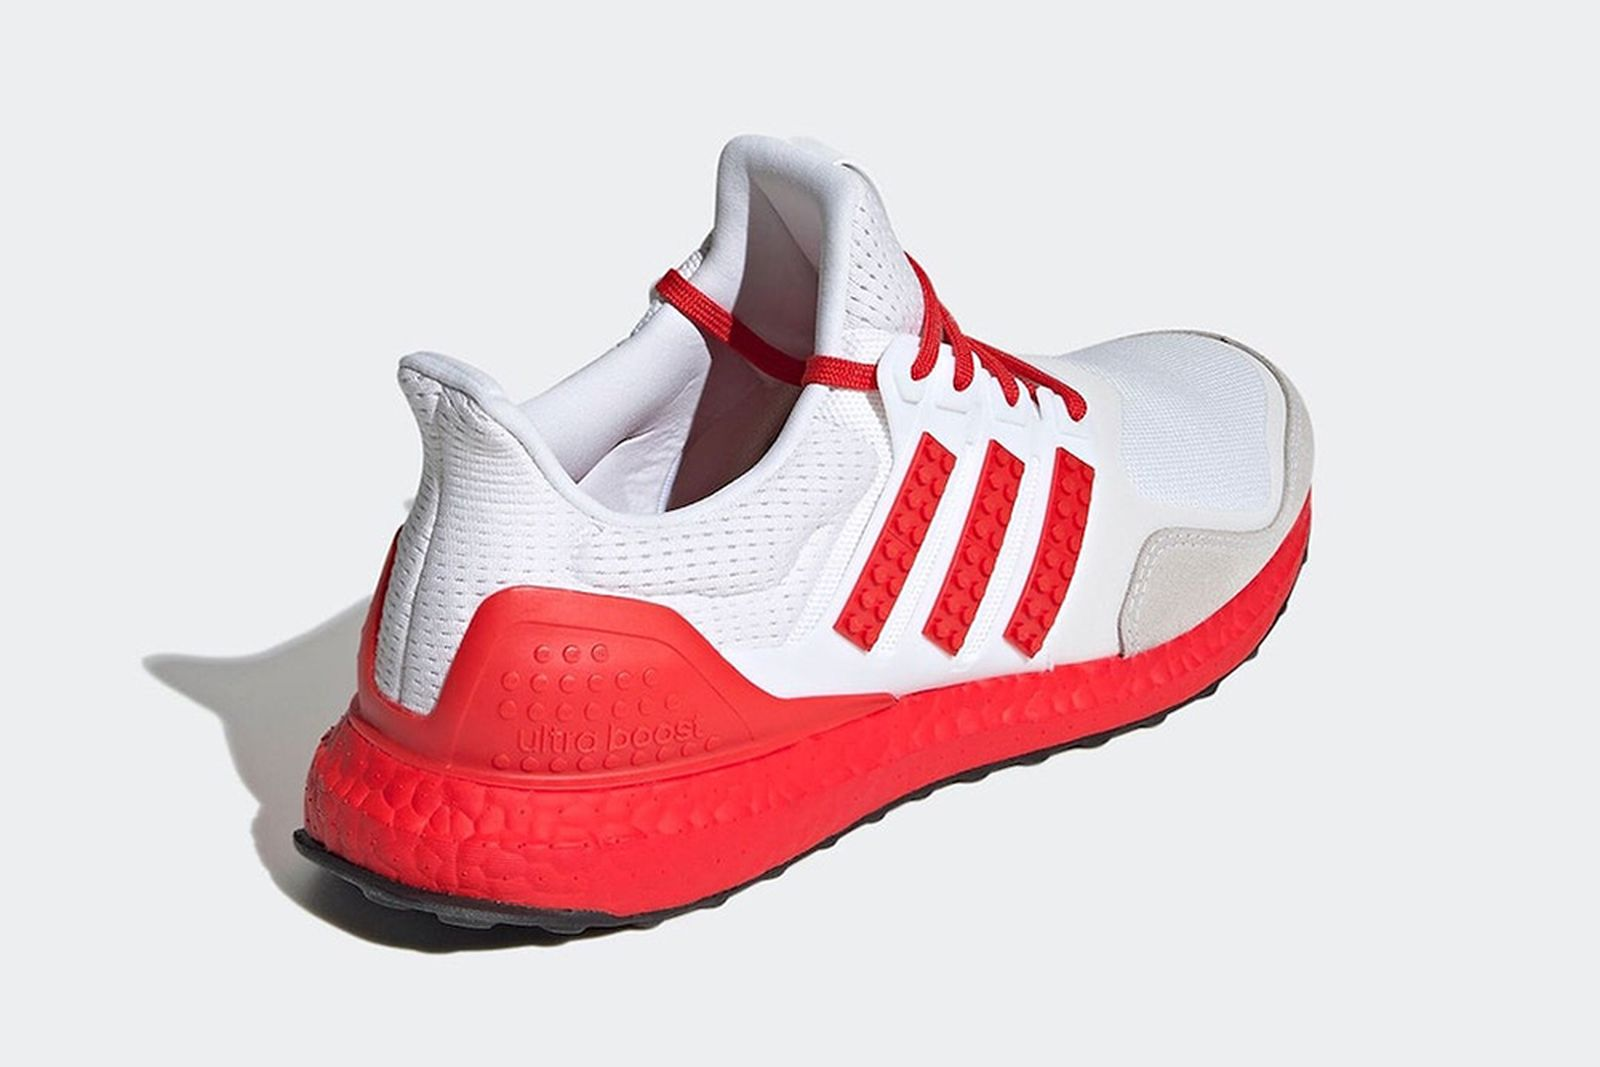 lego-adidas-ultraboost-color-pack-release-date-price-11